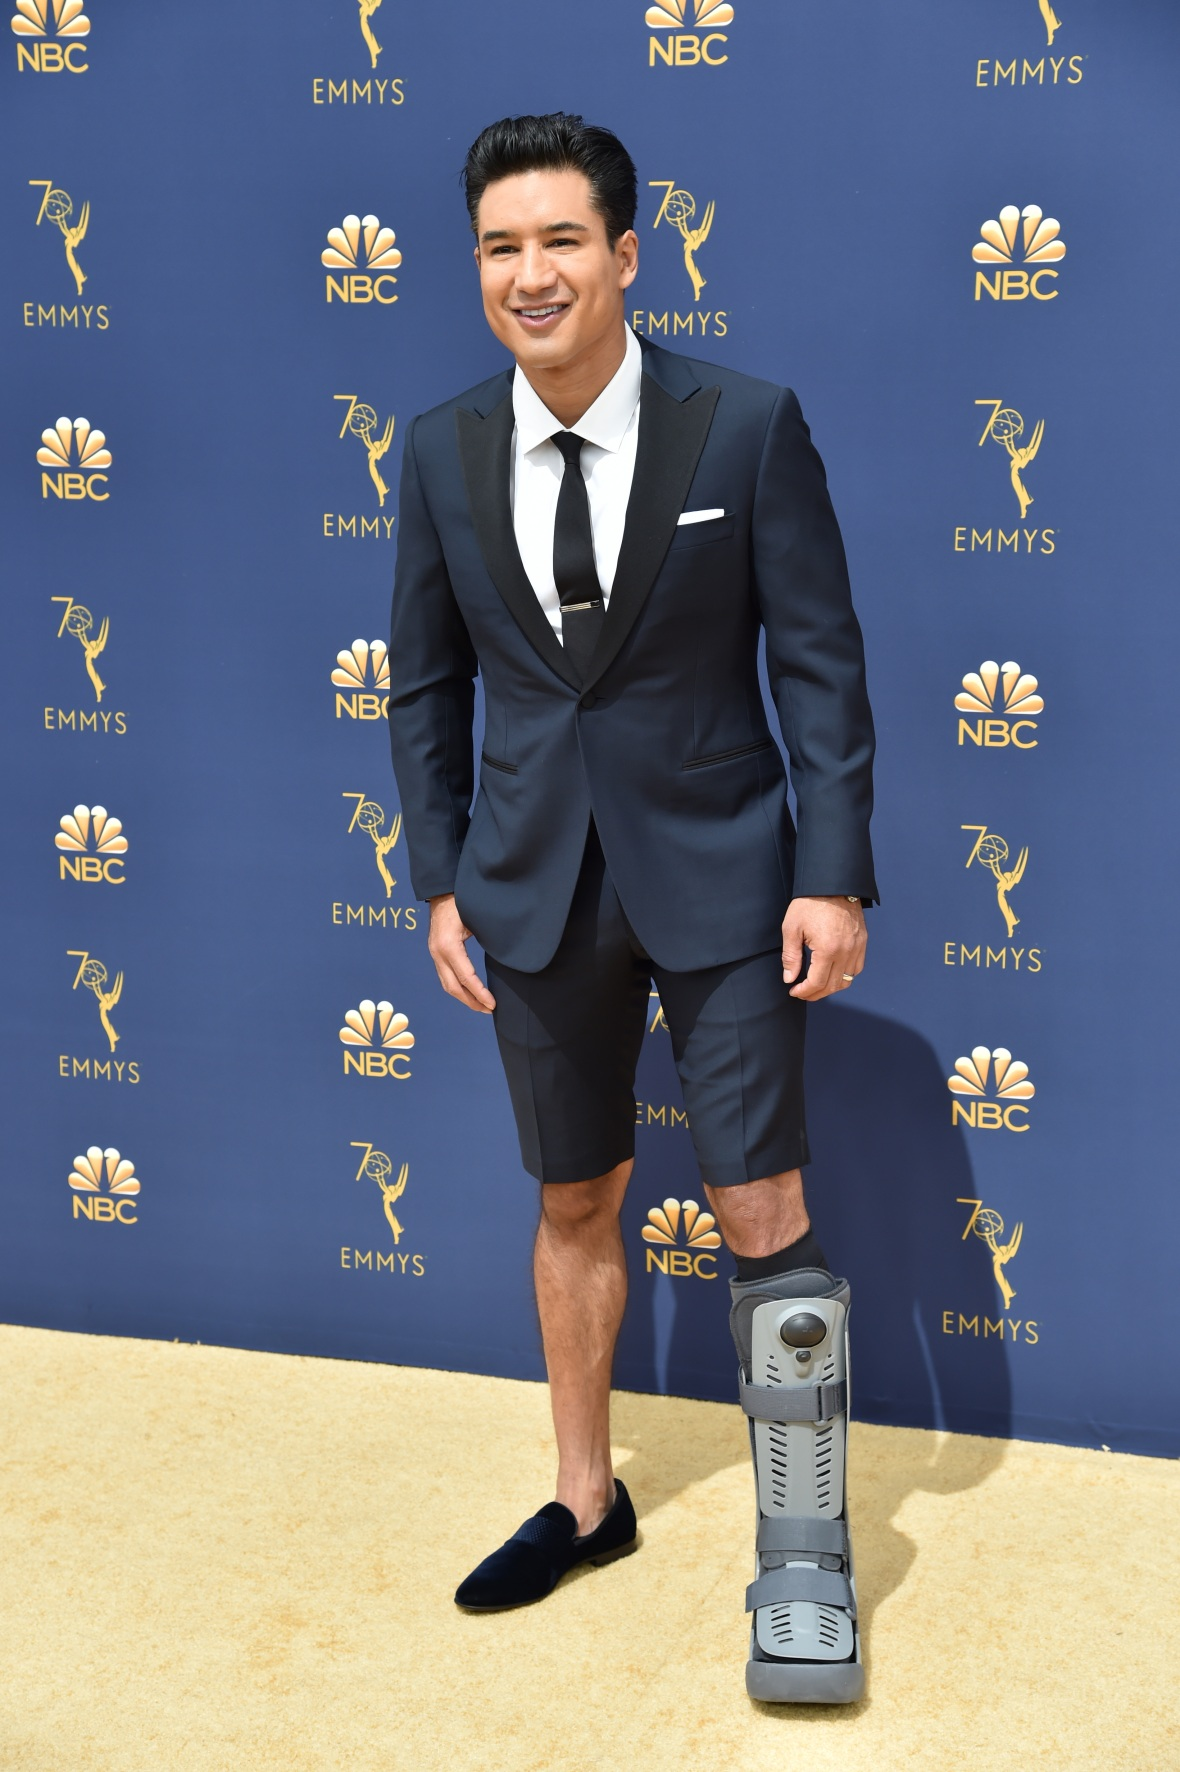 mario lopez leg injury